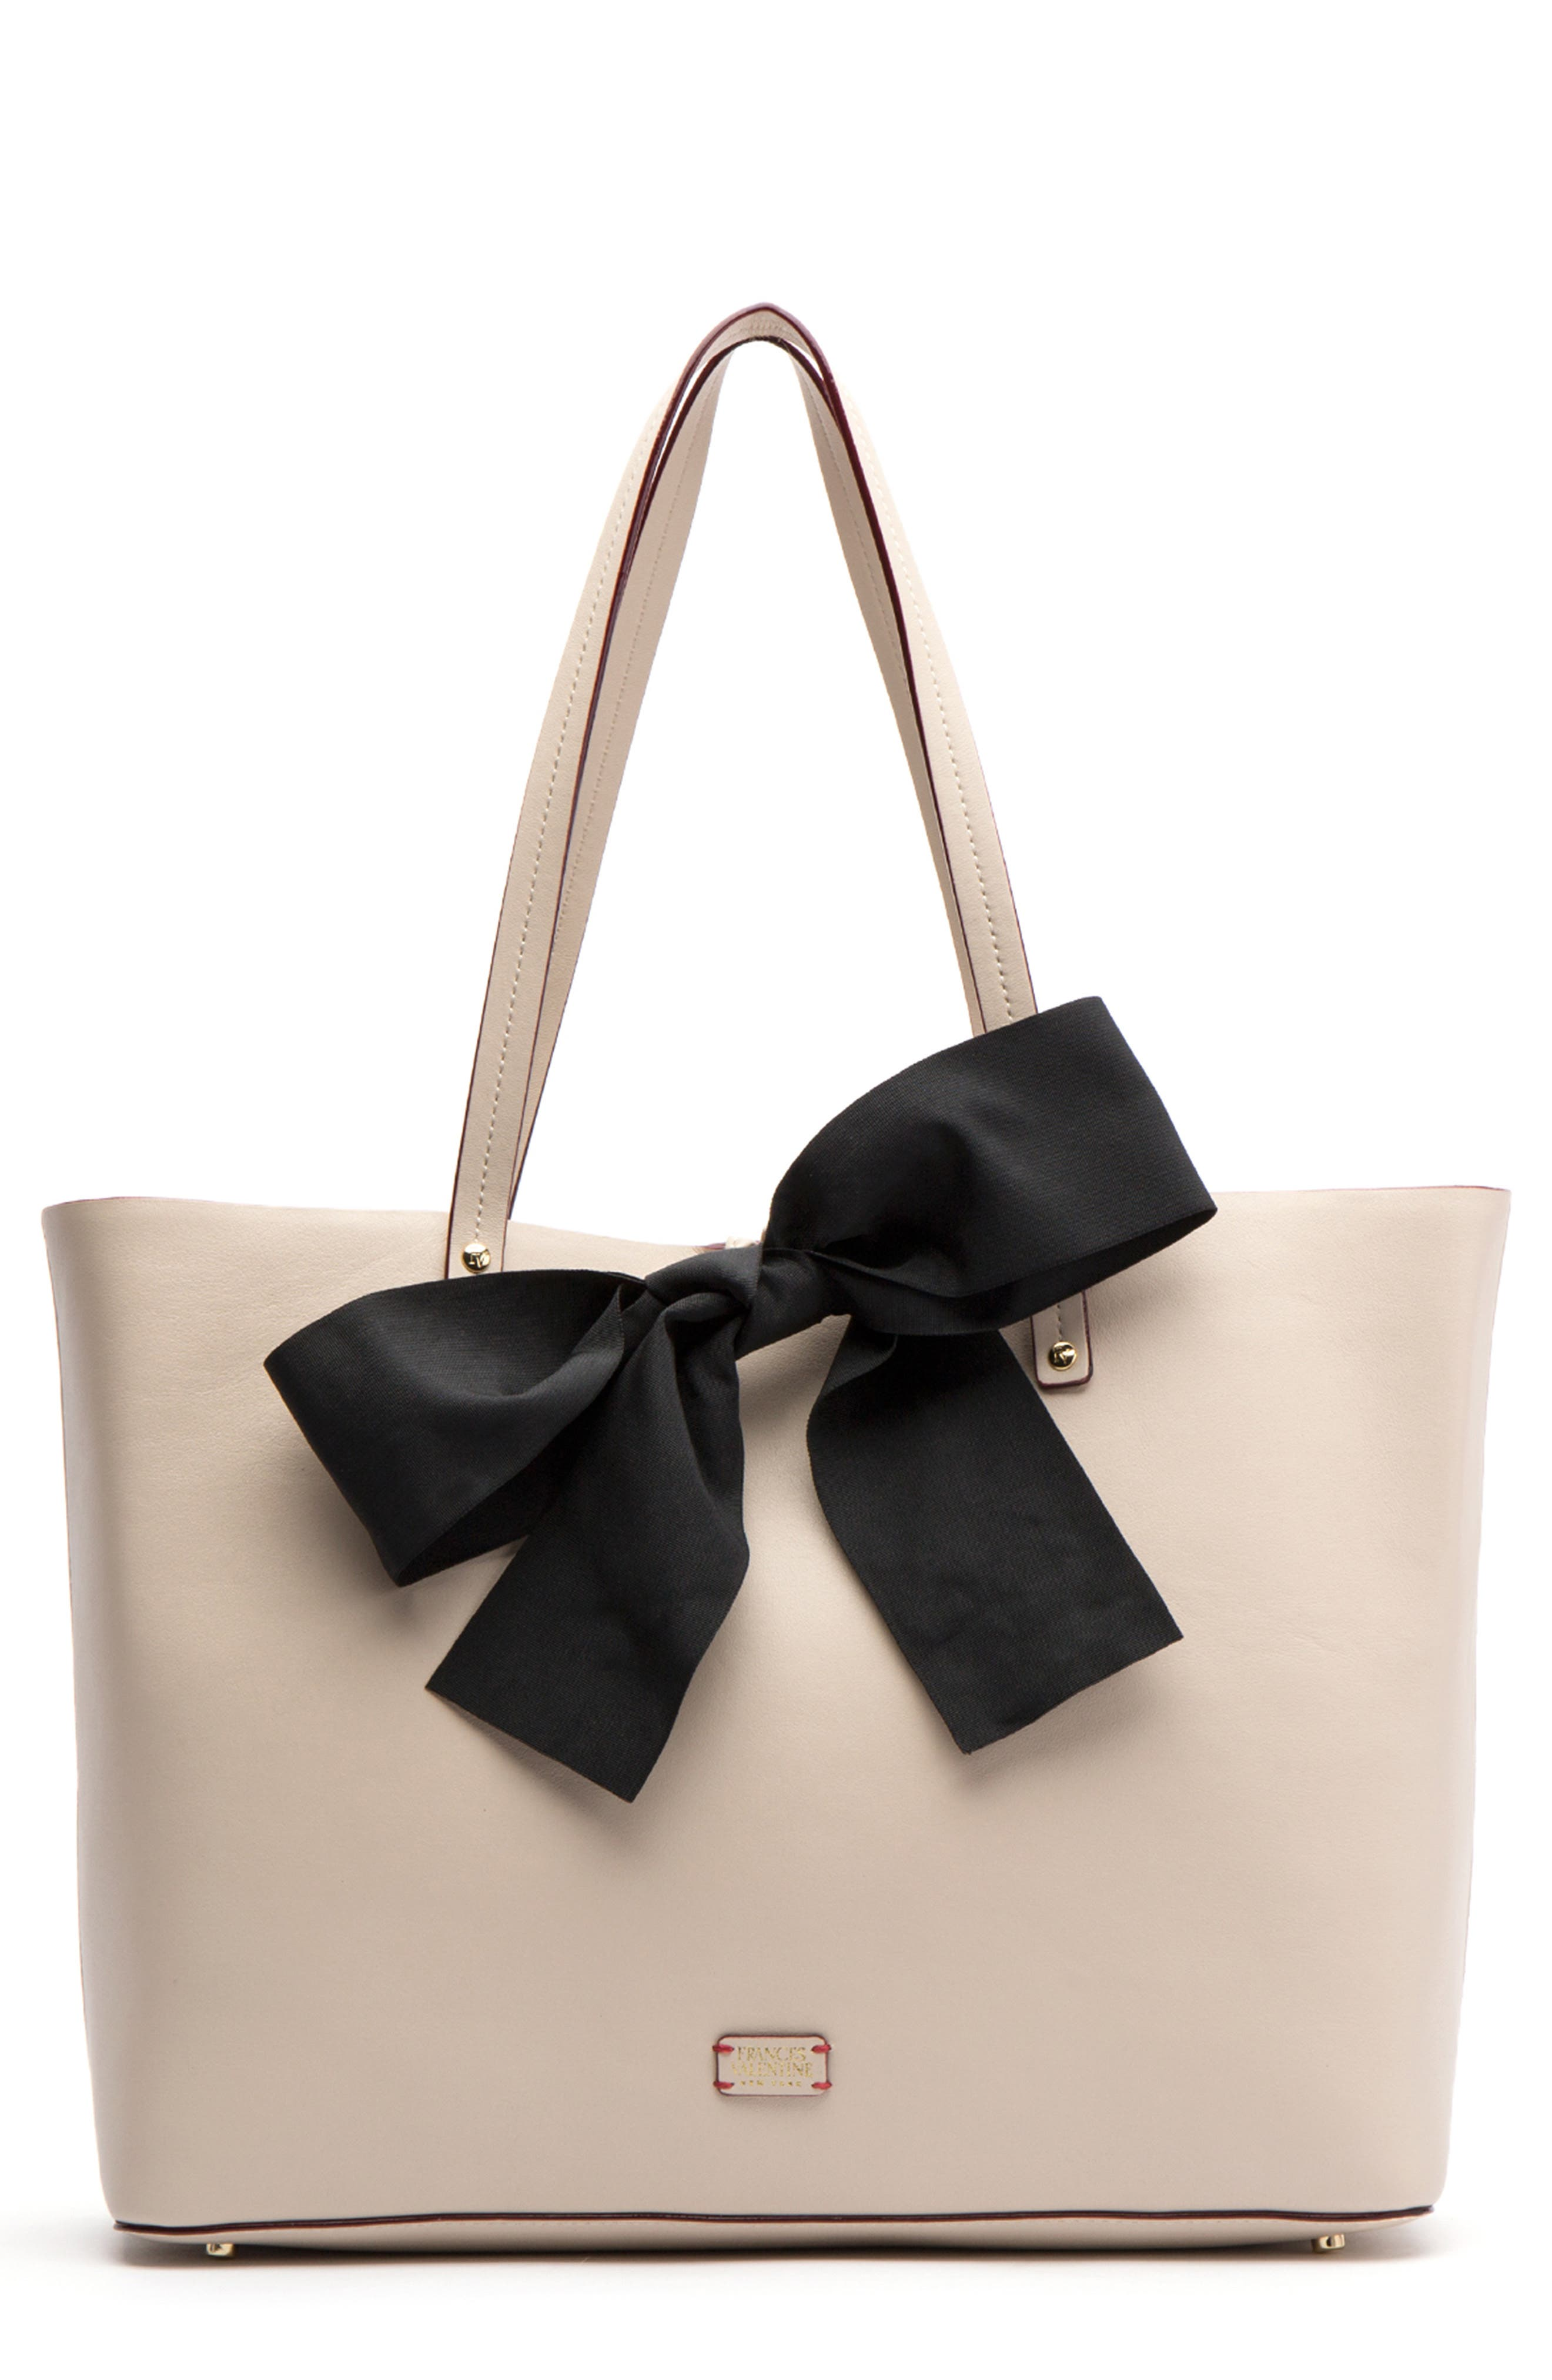 FRANCES VALENTINE Trixie Leather Tote in Oyster/ Black